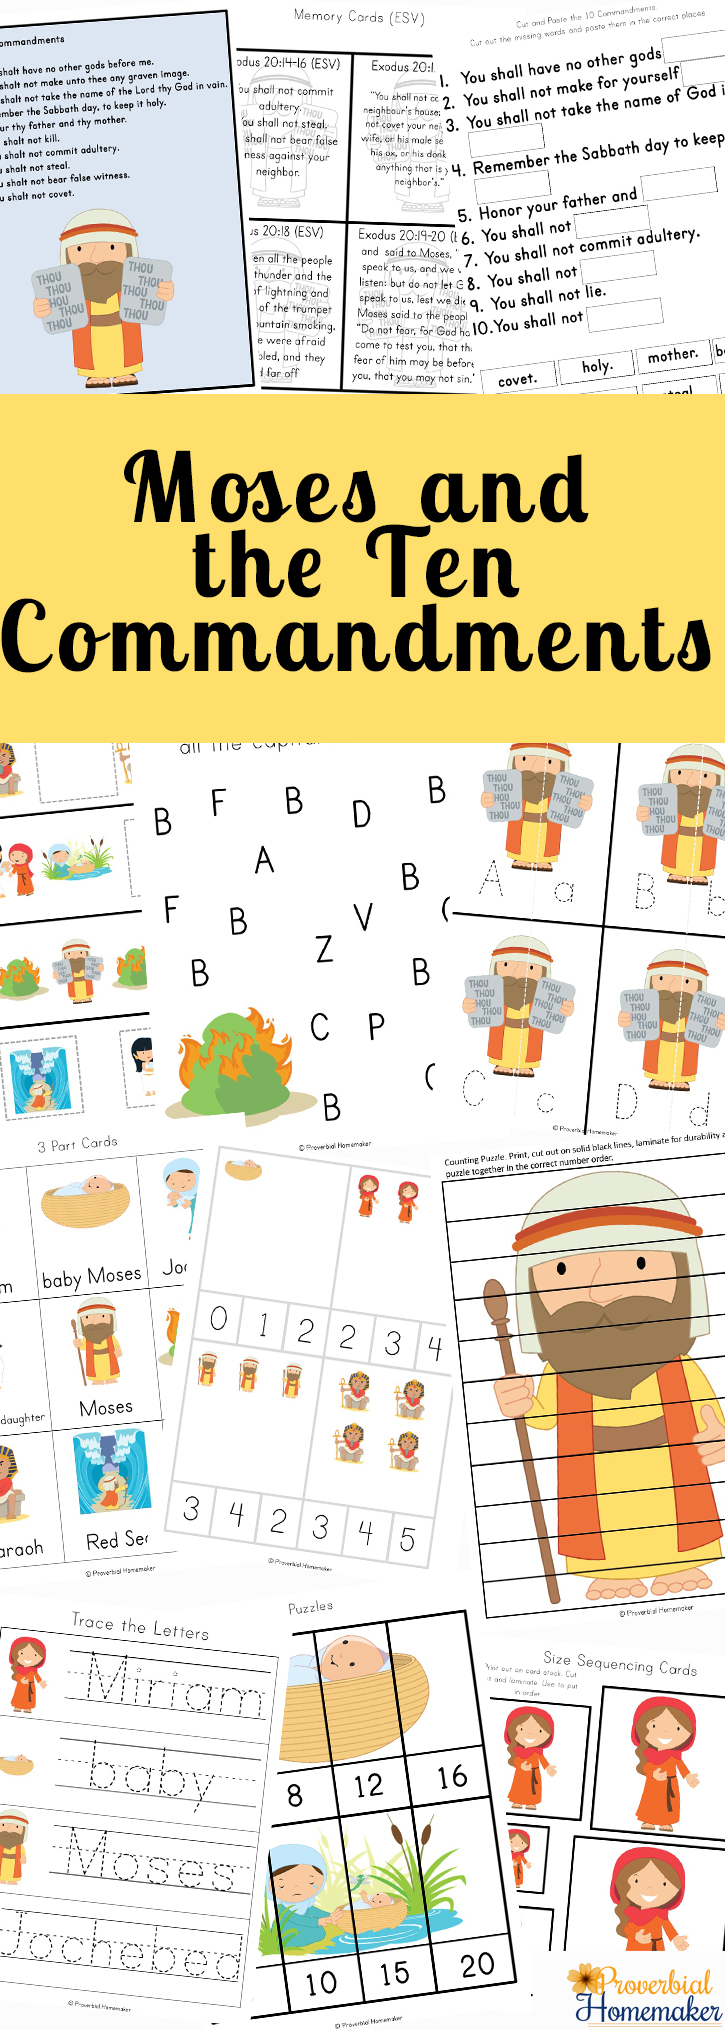 photo relating to Ten Commandments Printable identify Moses and the 10 Commandments Printable Pack - Proverbial